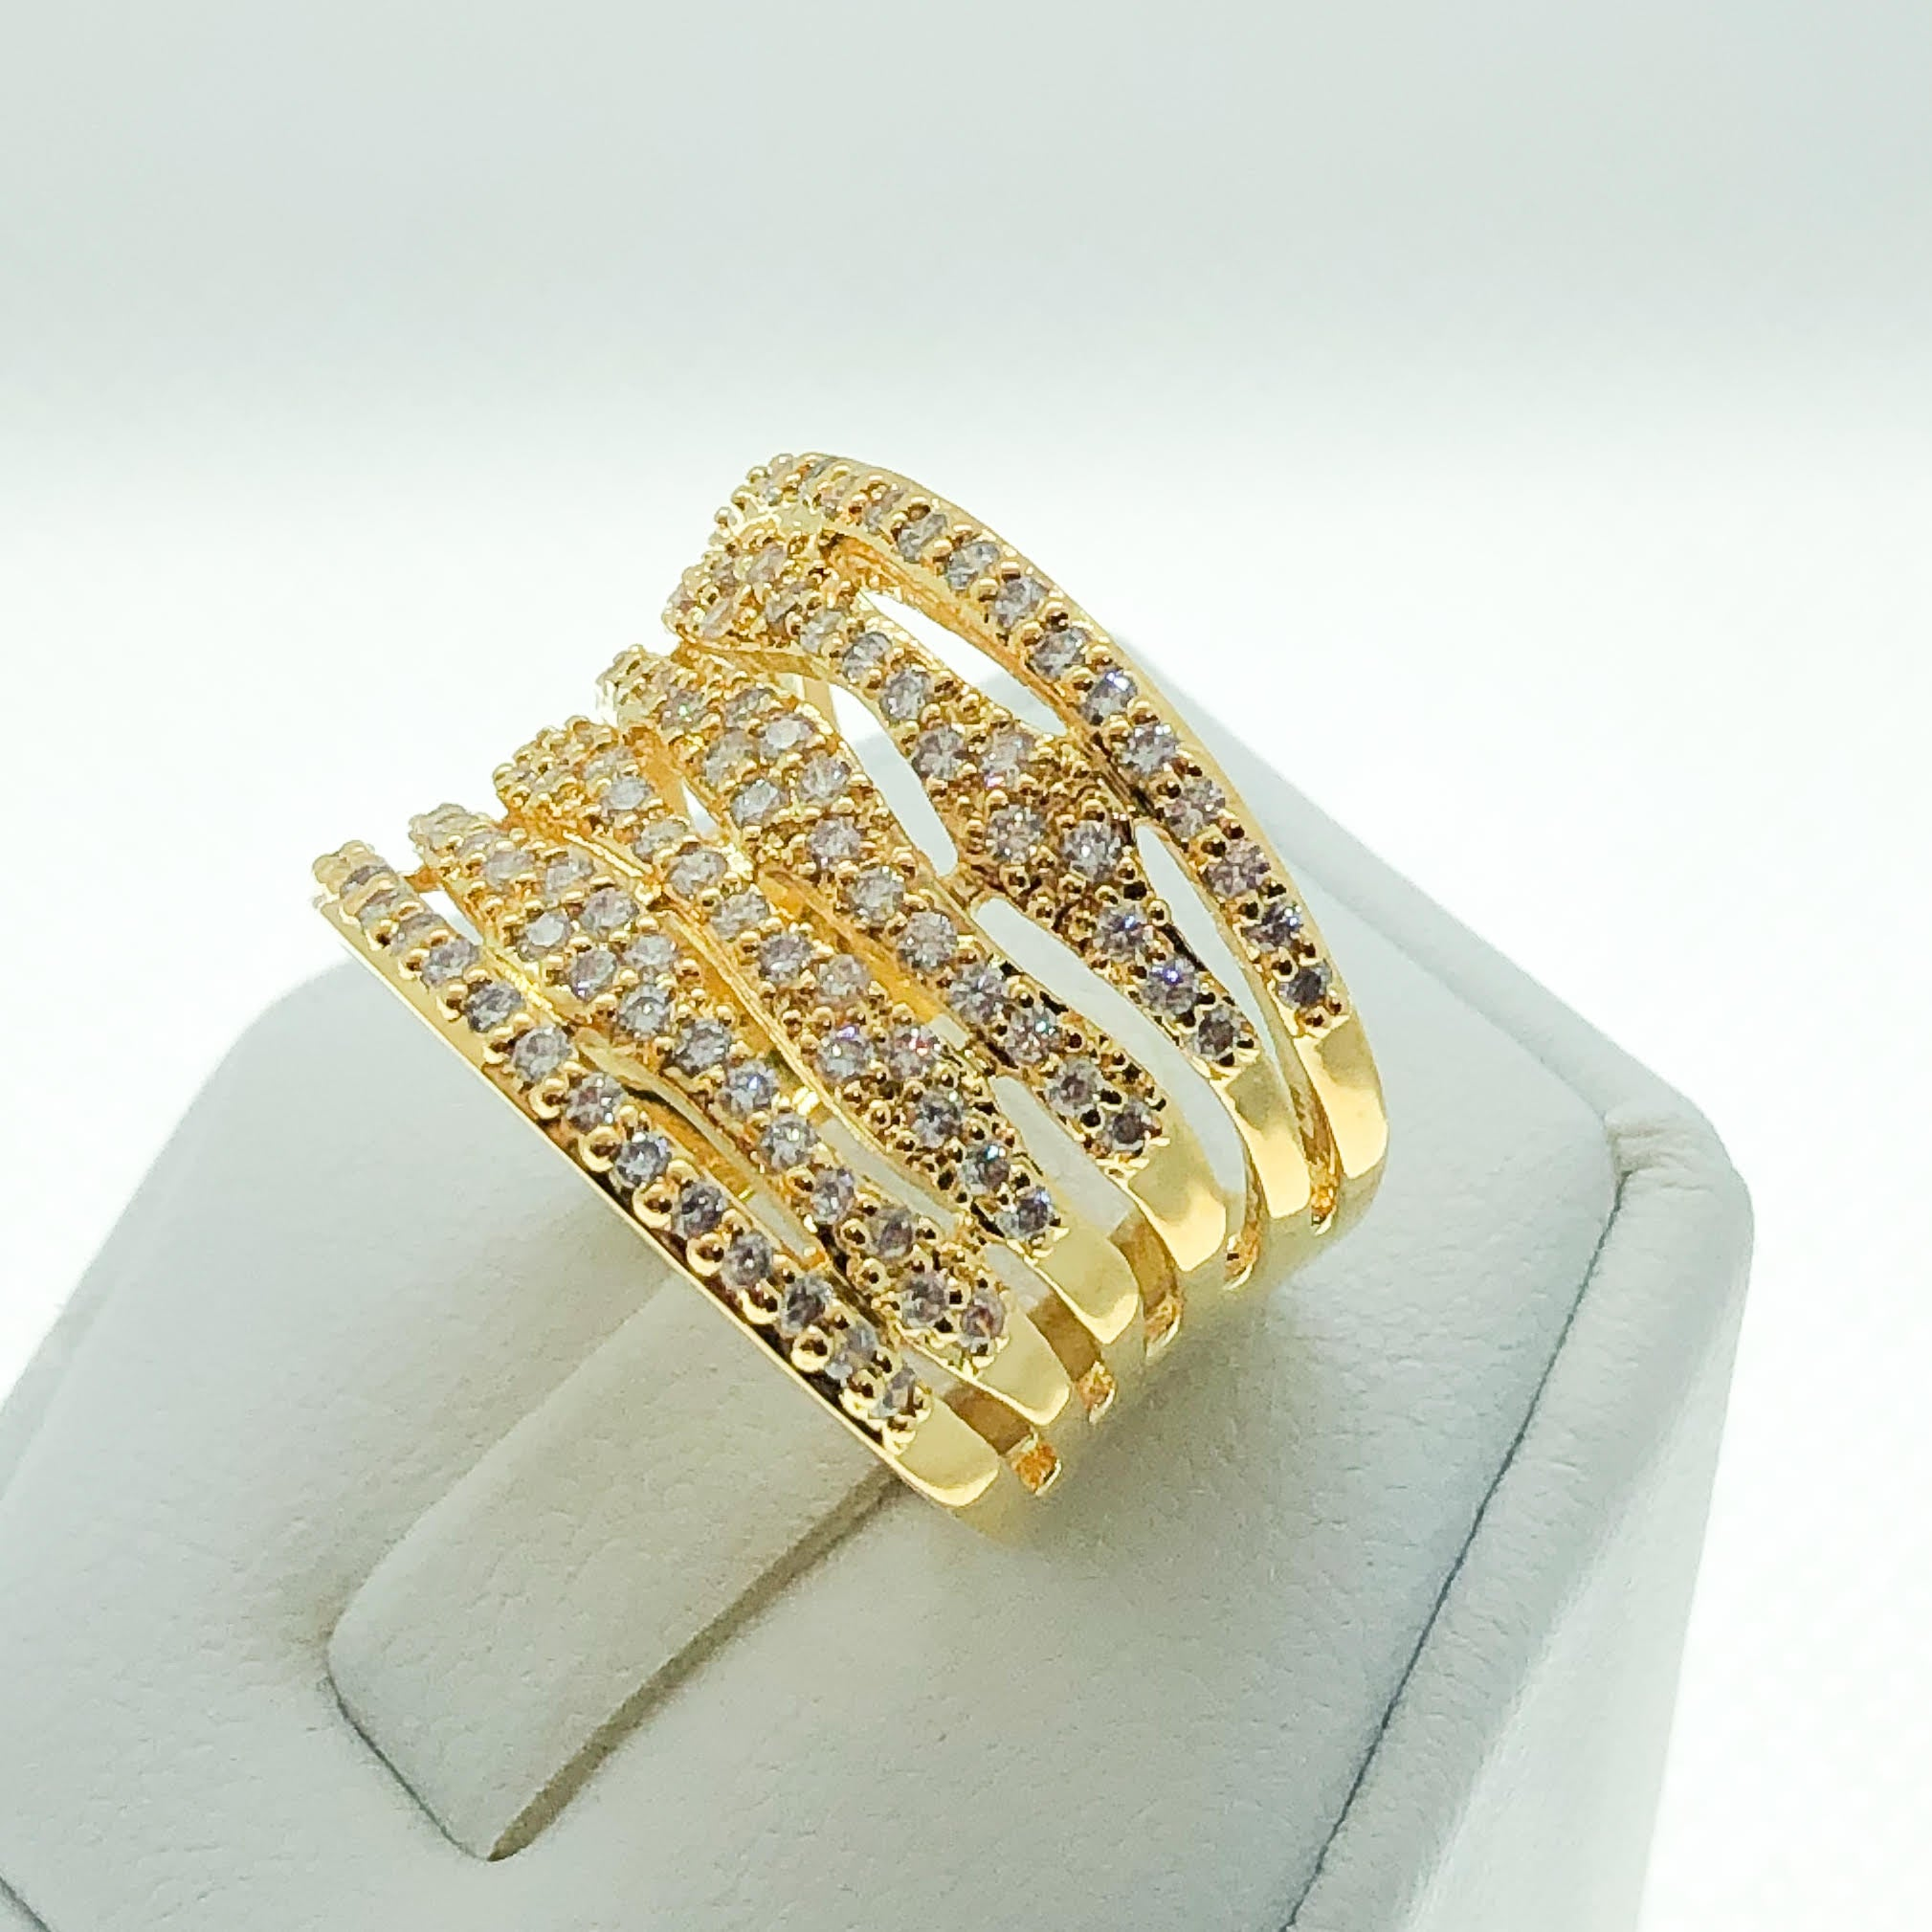 ID:R7288 Women Jewelry 18K Yellow Gold GF Stunning Clear Round Stone Anniversary Eternity Ring